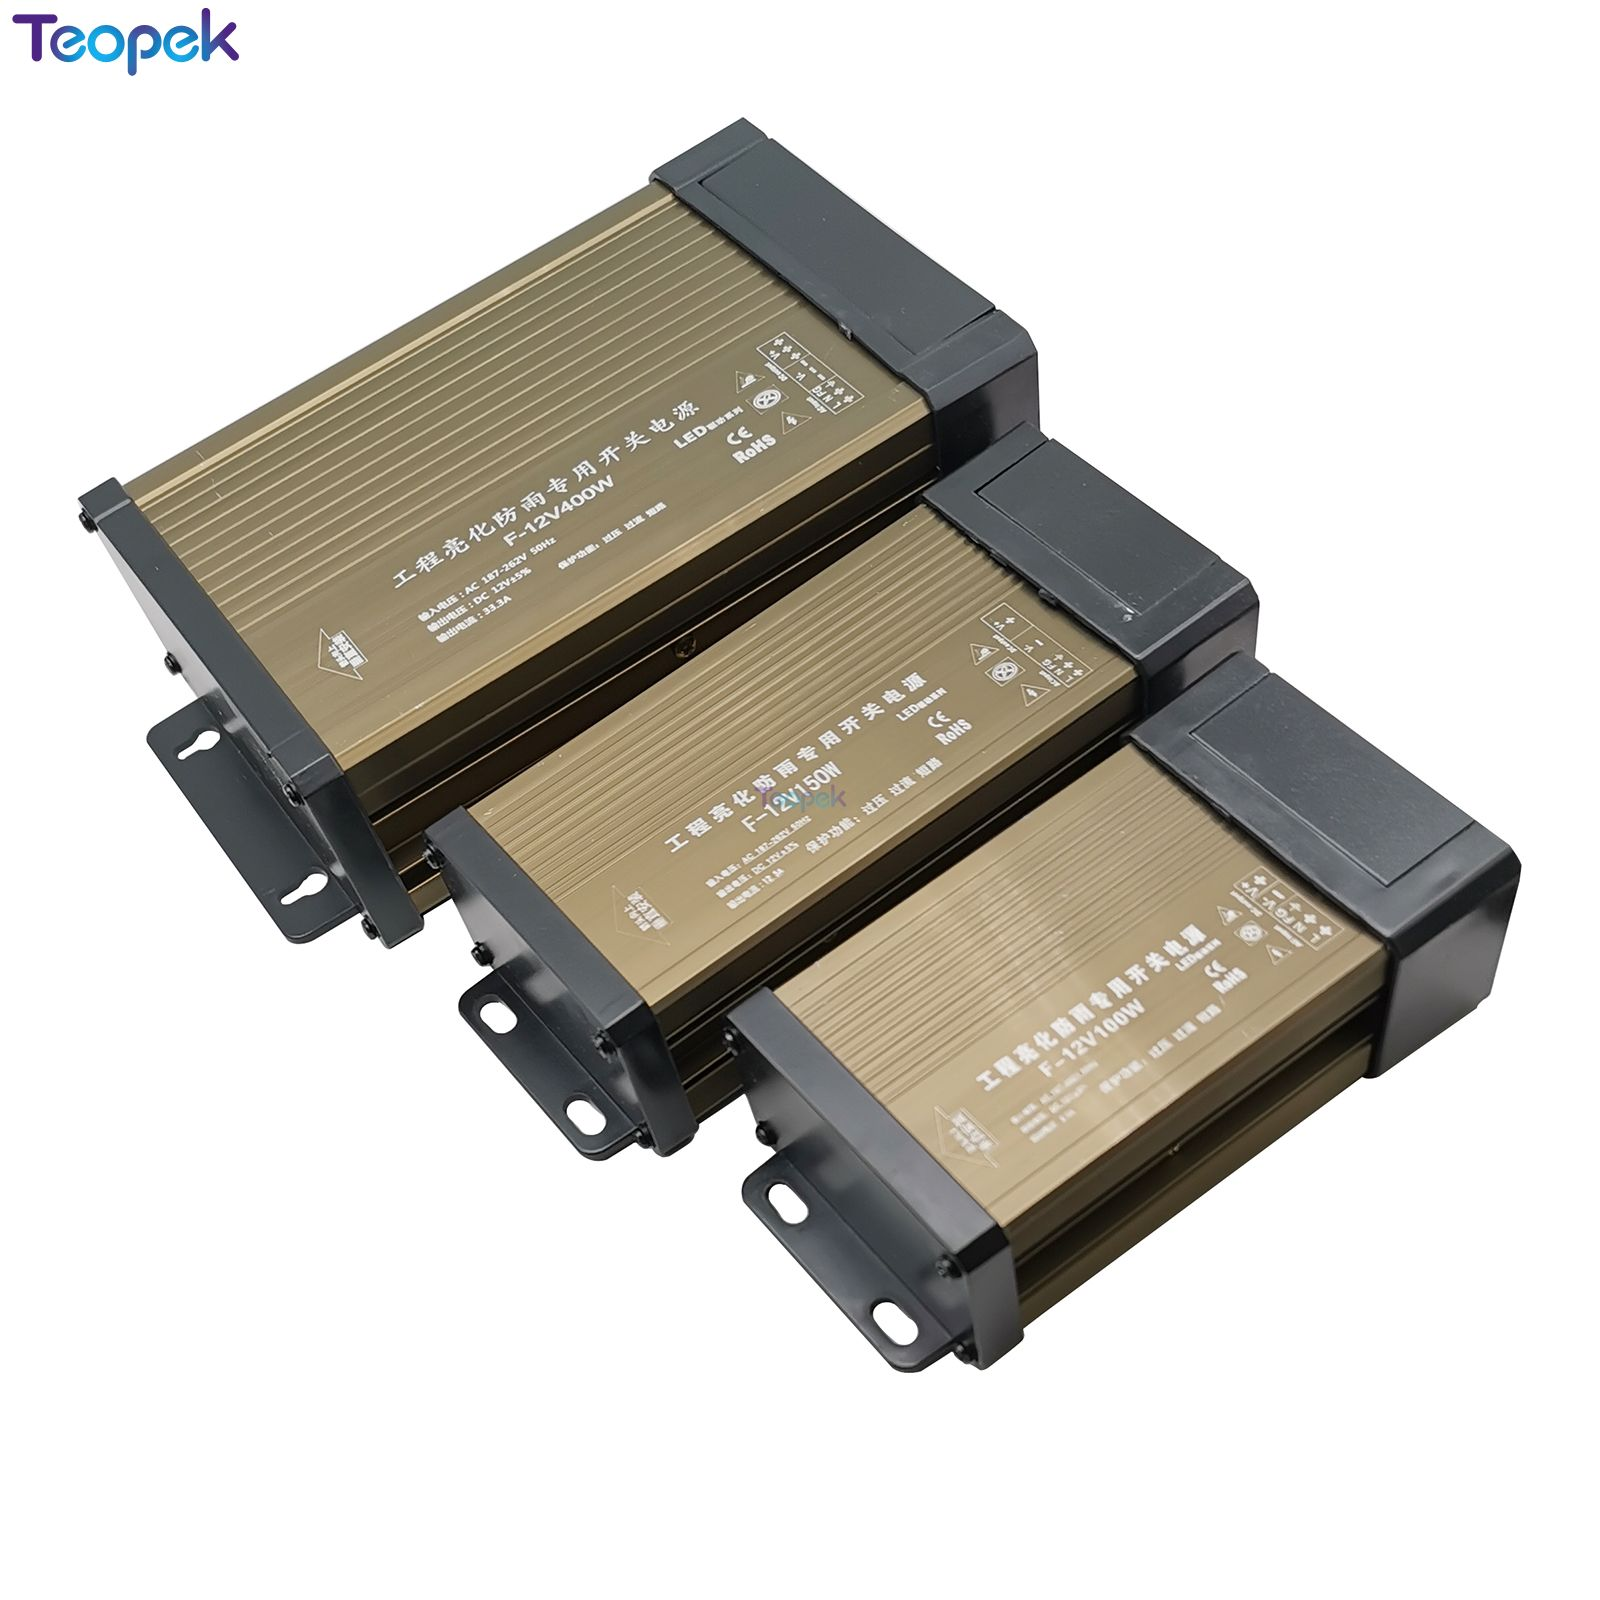 Rainproof Switching Power Supply IP43 DC12V 60W 100W 150W 200W 300W 400W 12V LED outdoor Transformer DC 12V image